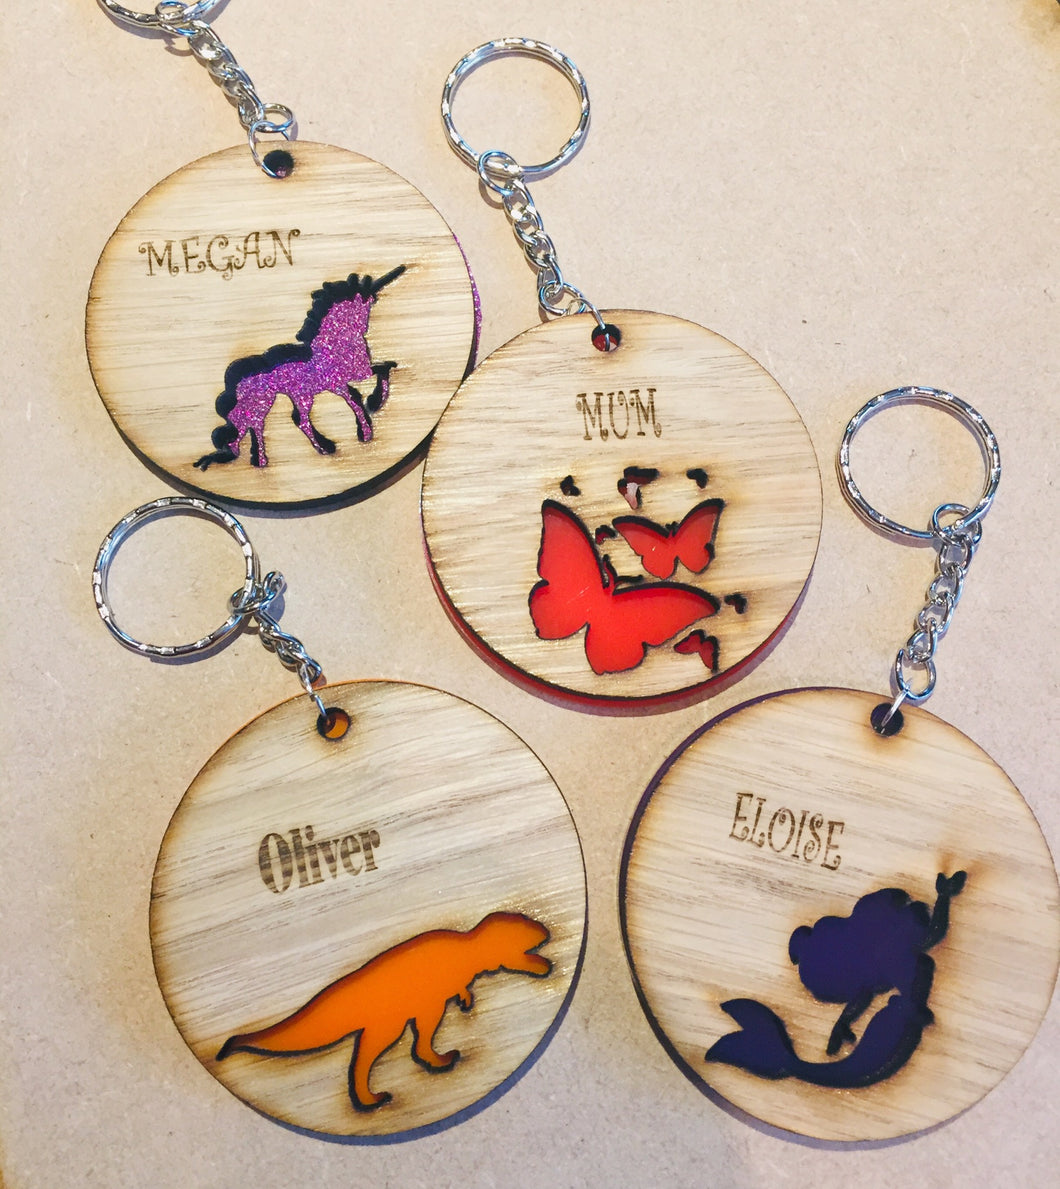 Wooden  personalised bag tags - Laser LLama Designs Ltd